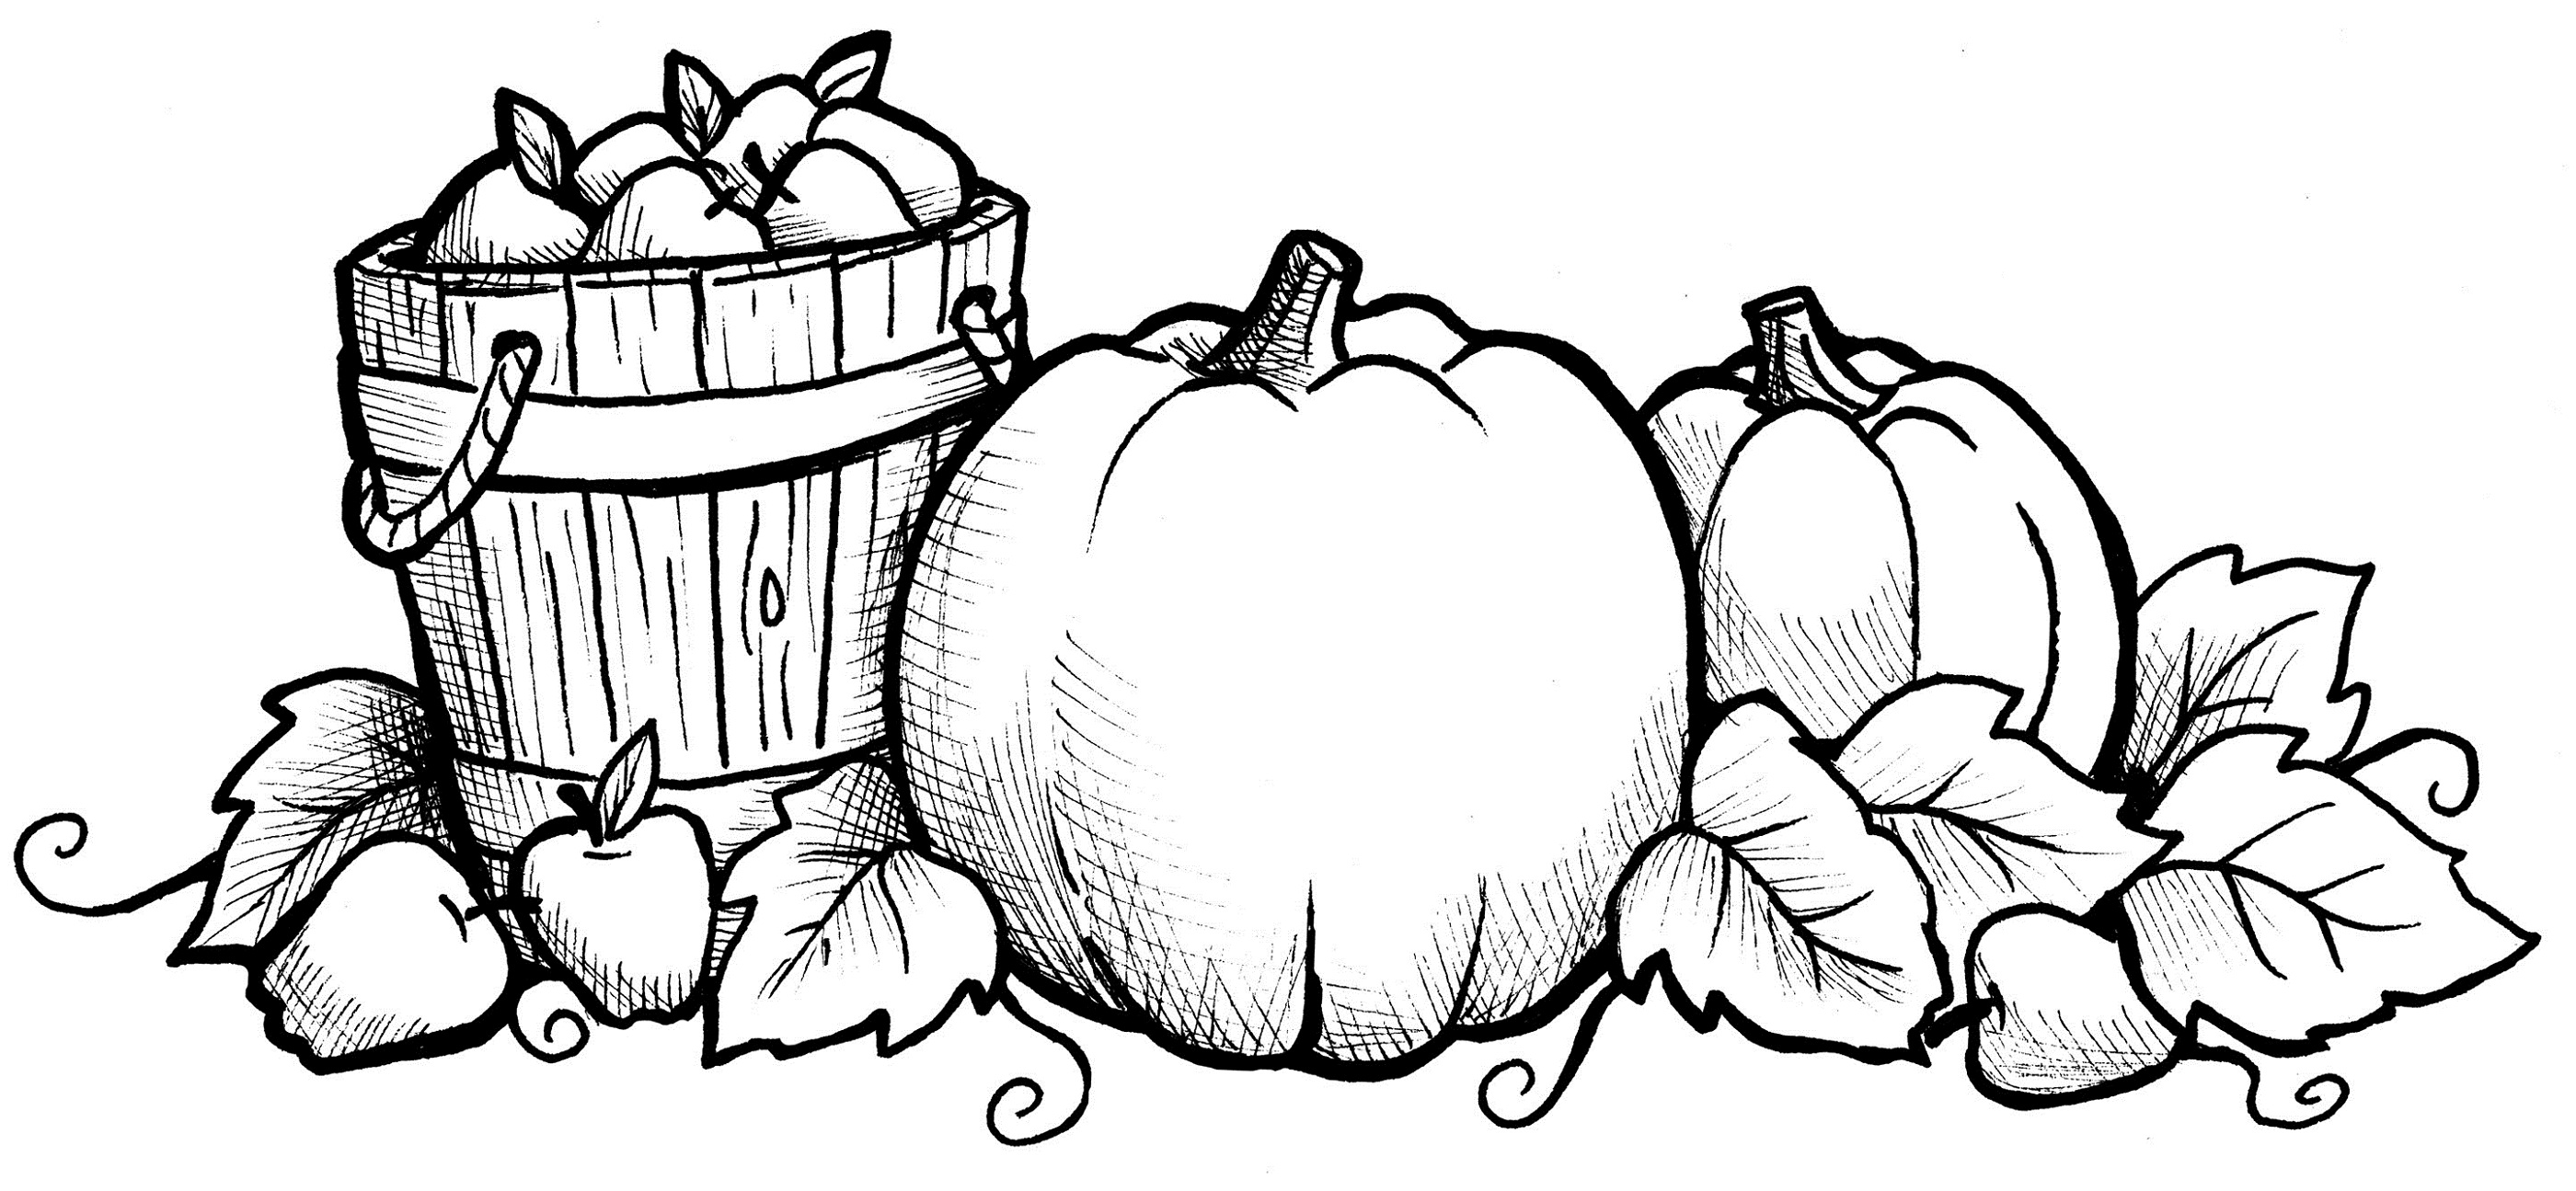 pretty fall harvest coloring pages for adults - Fall Festival Coloring Pages